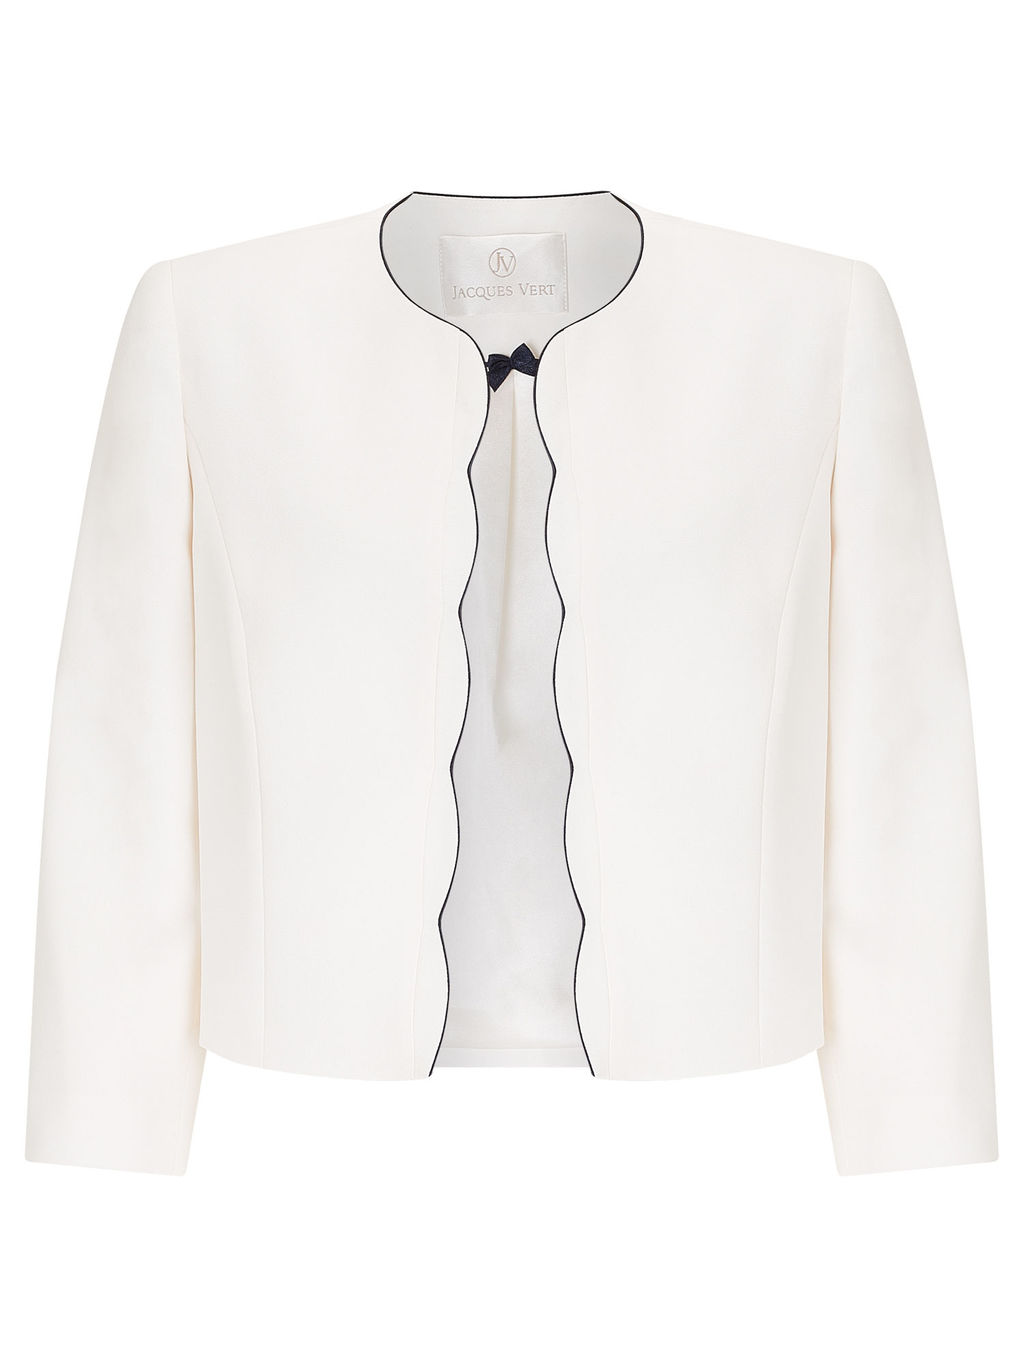 Scallop Edge Jacket, Light Neutral - pattern: plain; collar: round collar/collarless; style: boxy; predominant colour: ivory/cream; secondary colour: black; fit: straight cut (boxy); occasions: occasion; sleeve length: 3/4 length; sleeve style: standard; texture group: silky - light; collar break: high; pattern type: fabric; fibres: viscose/rayon - mix; length: cropped; season: a/w 2015; wardrobe: event